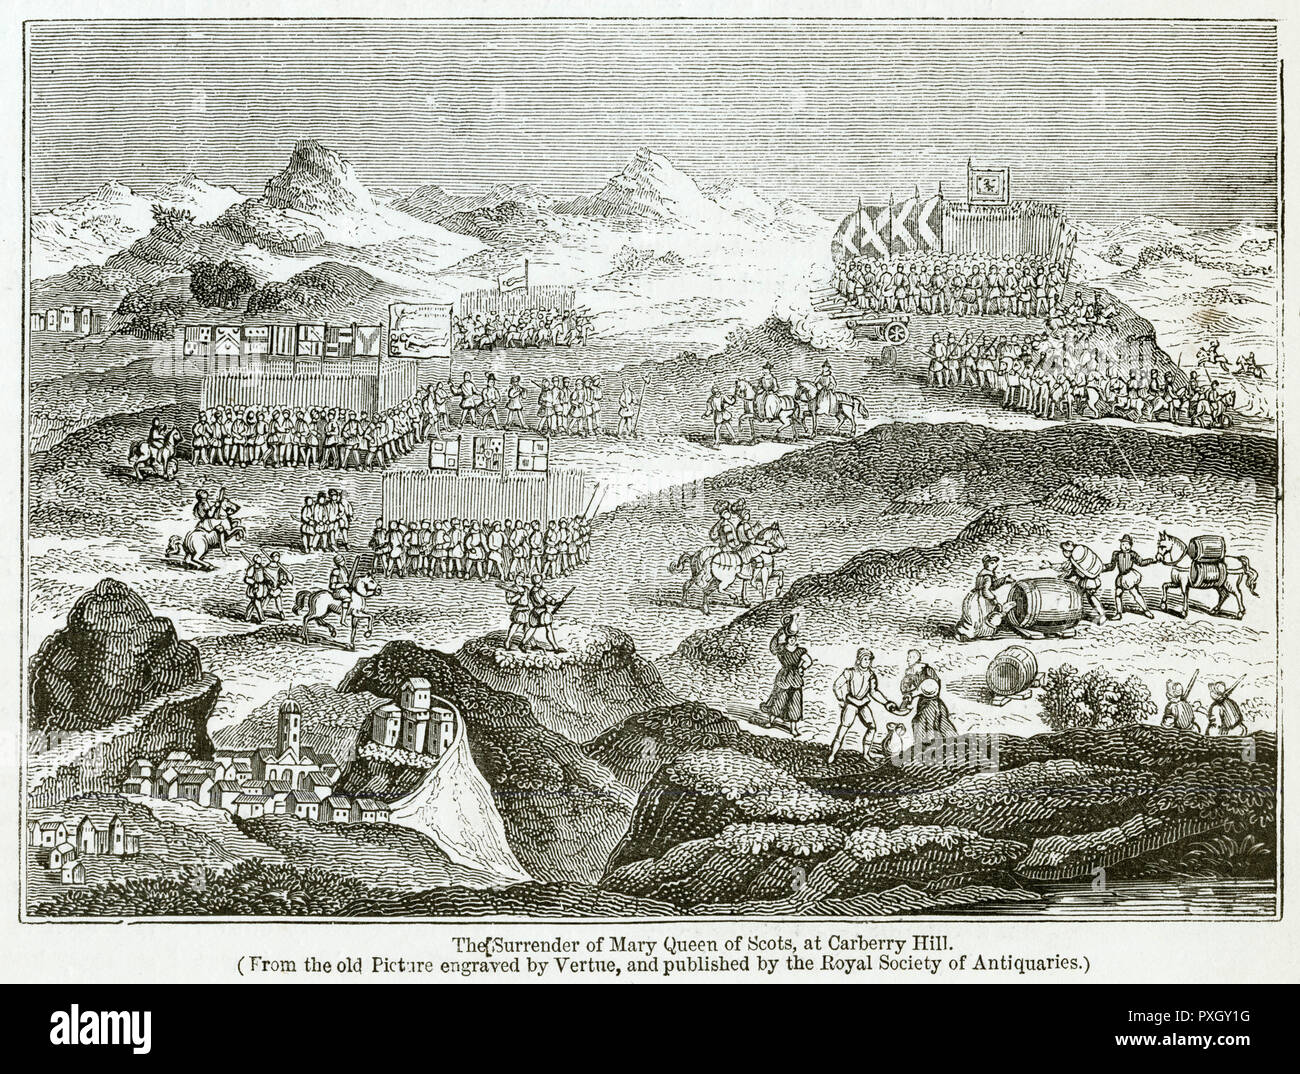 Battle of Carberry Hill, near Musselburgh, East Lothian, a few miles east of Edinburgh, Scotland. A number of Scottish lords objected to the rule of Mary, Queen of Scots after she had married the Earl of Bothwell, who was widely believed to have murdered her previous husband Lord Darnley.     Date: 15 June 1567 - Stock Image